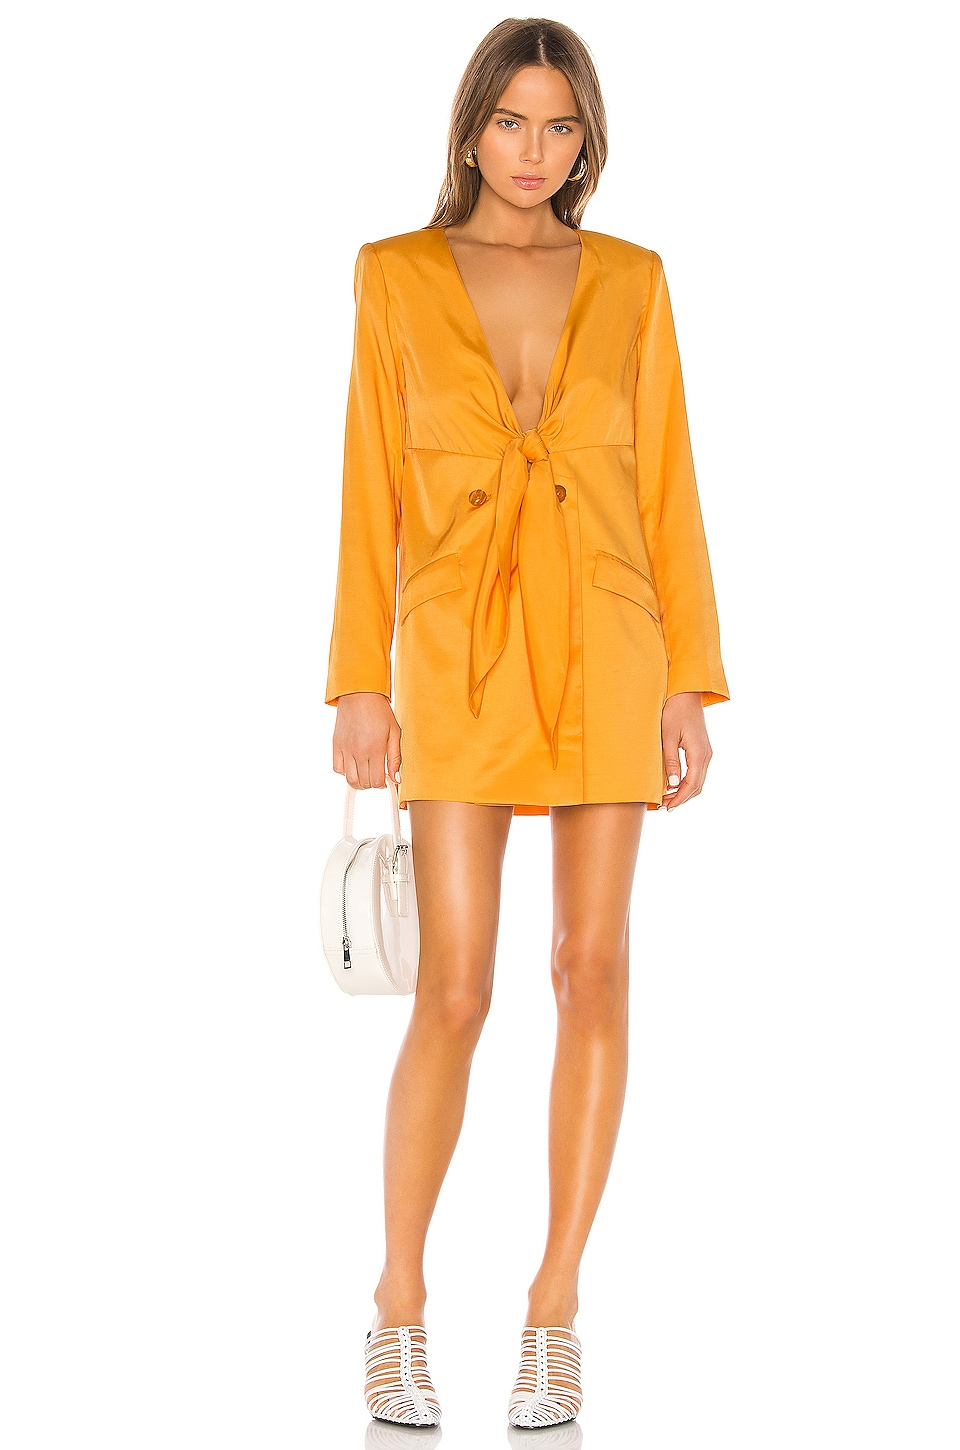 L'Academie The Camille Mini Dress in Orange